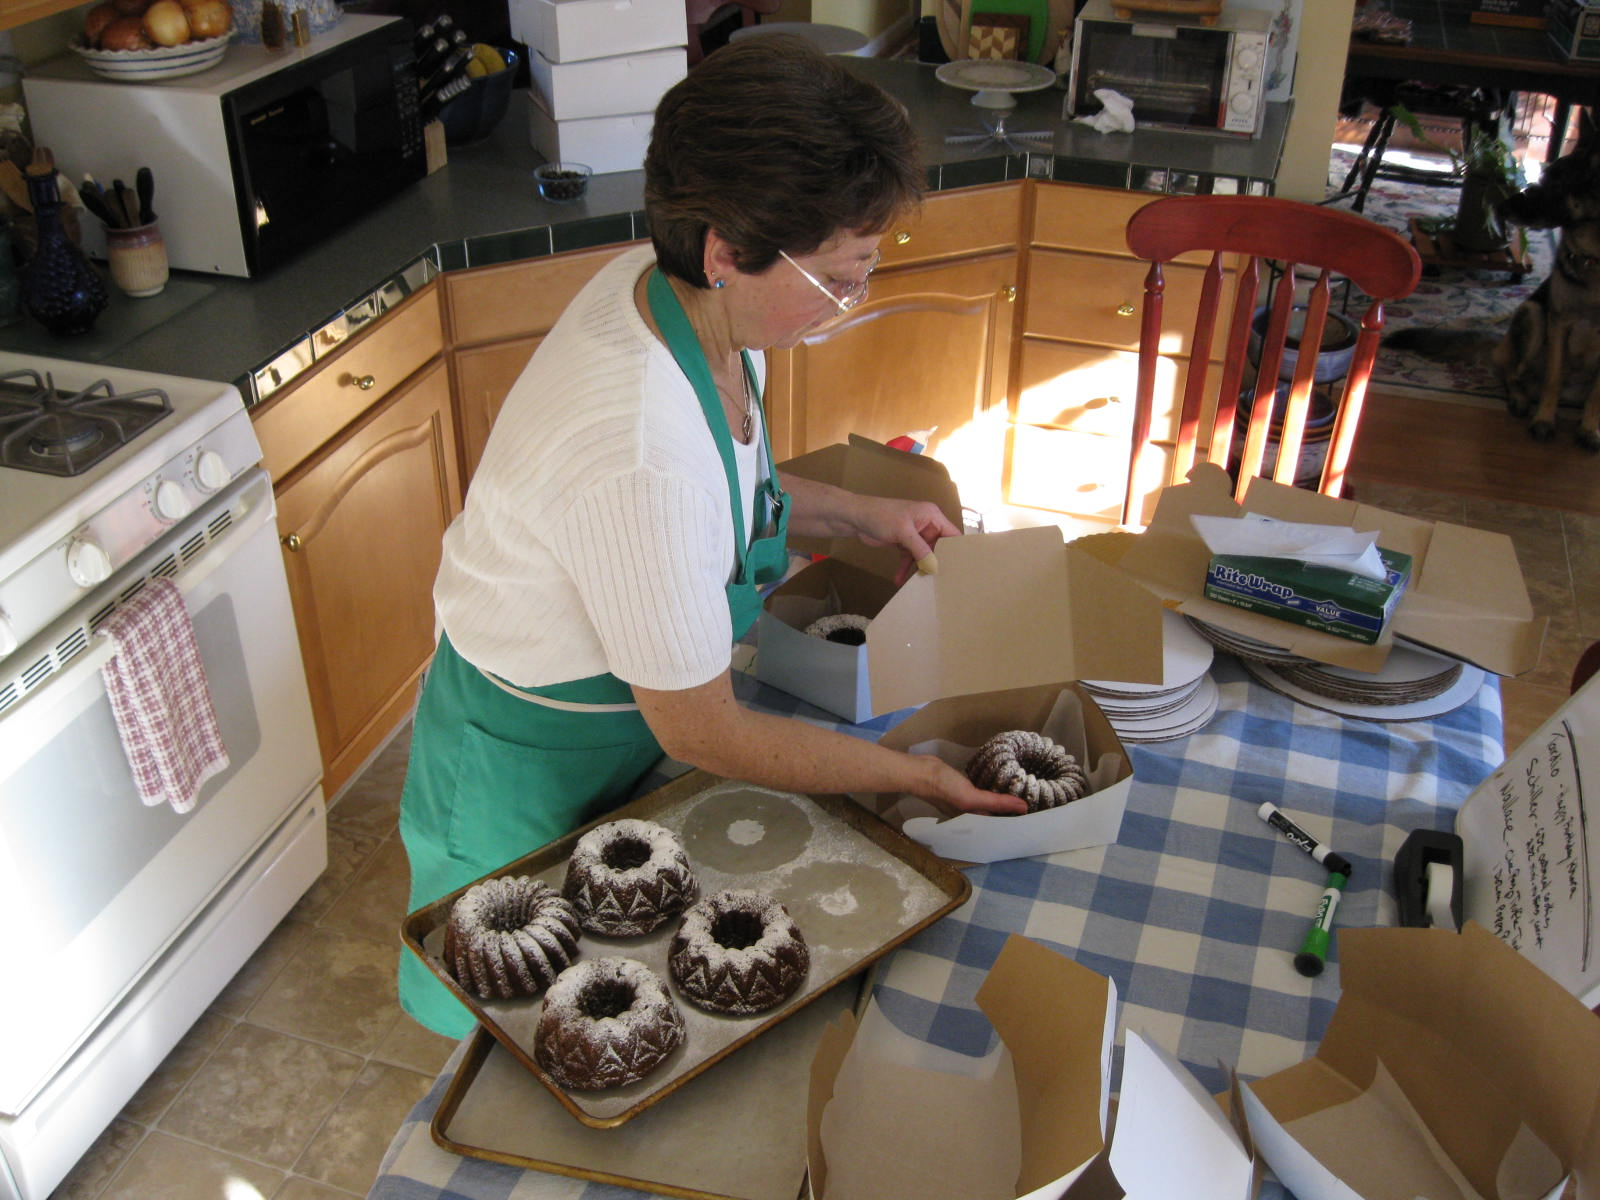 Blog Archive » Are You Starting a Home-Based Food Business?